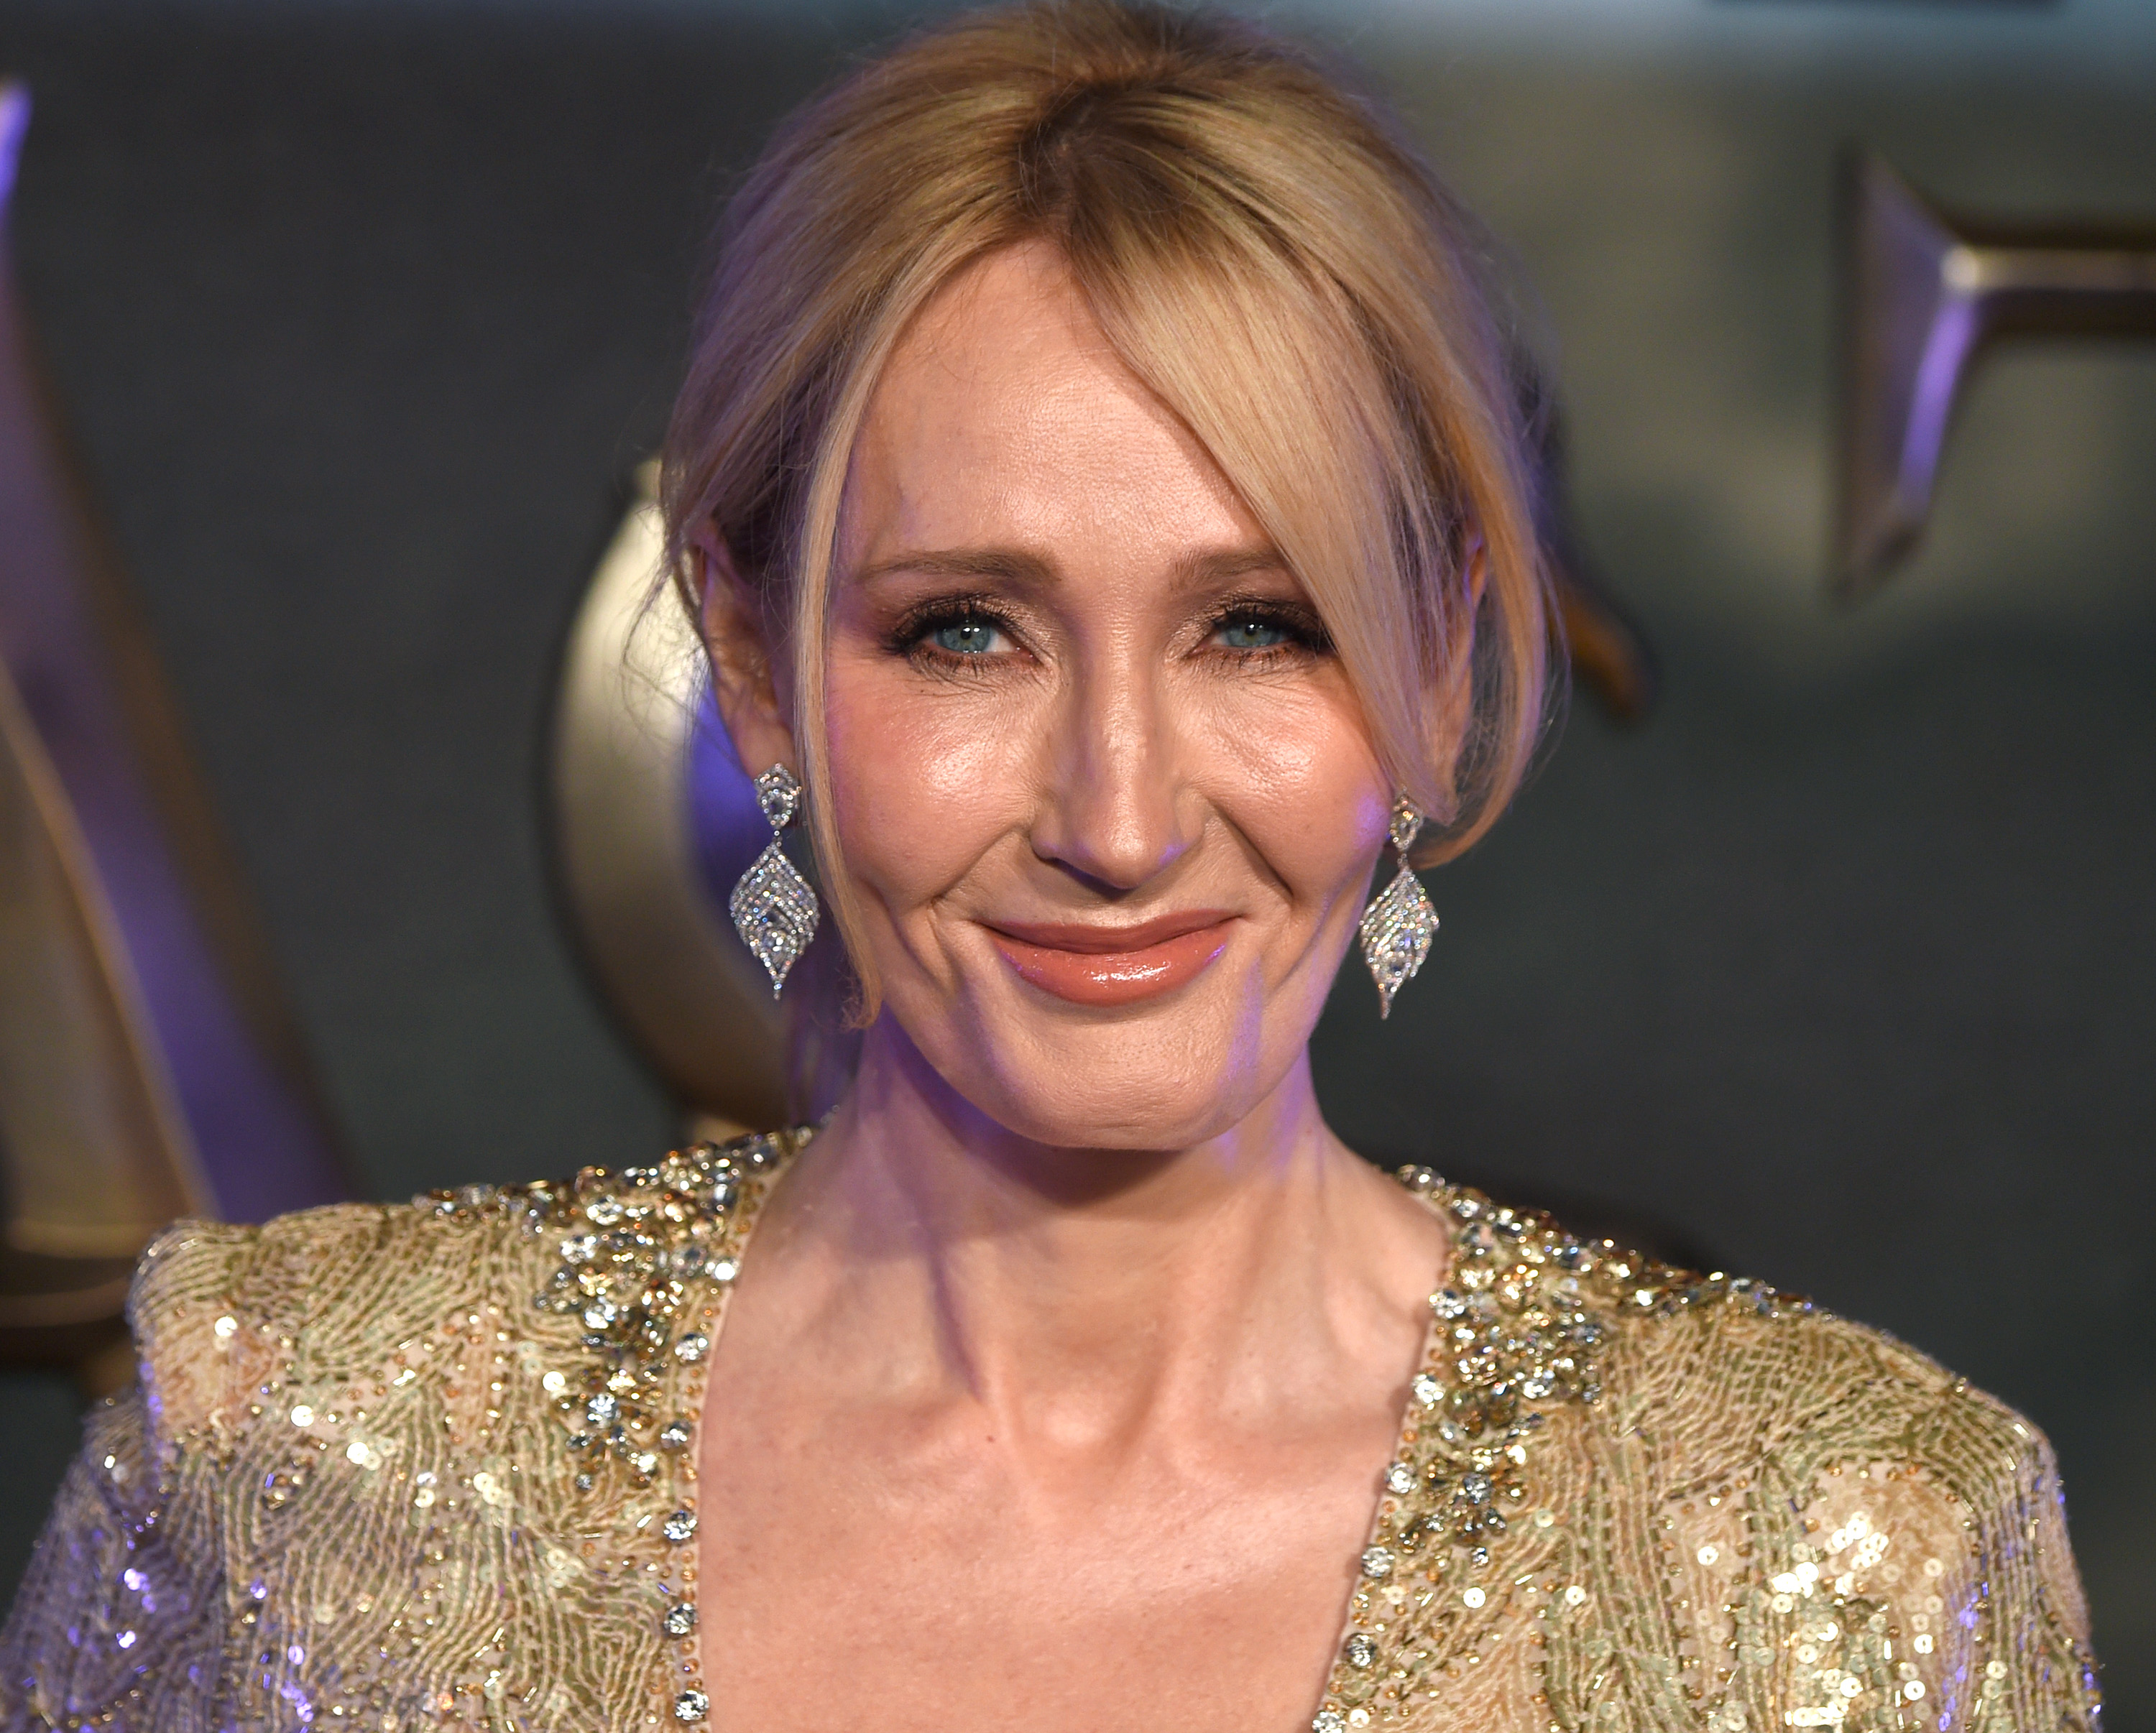 J.K. Rowling attends the European premiere of  Fantastic Beasts And Where To Find Them  at Odeon Leicester Square on November 15, 2016 in London, England.